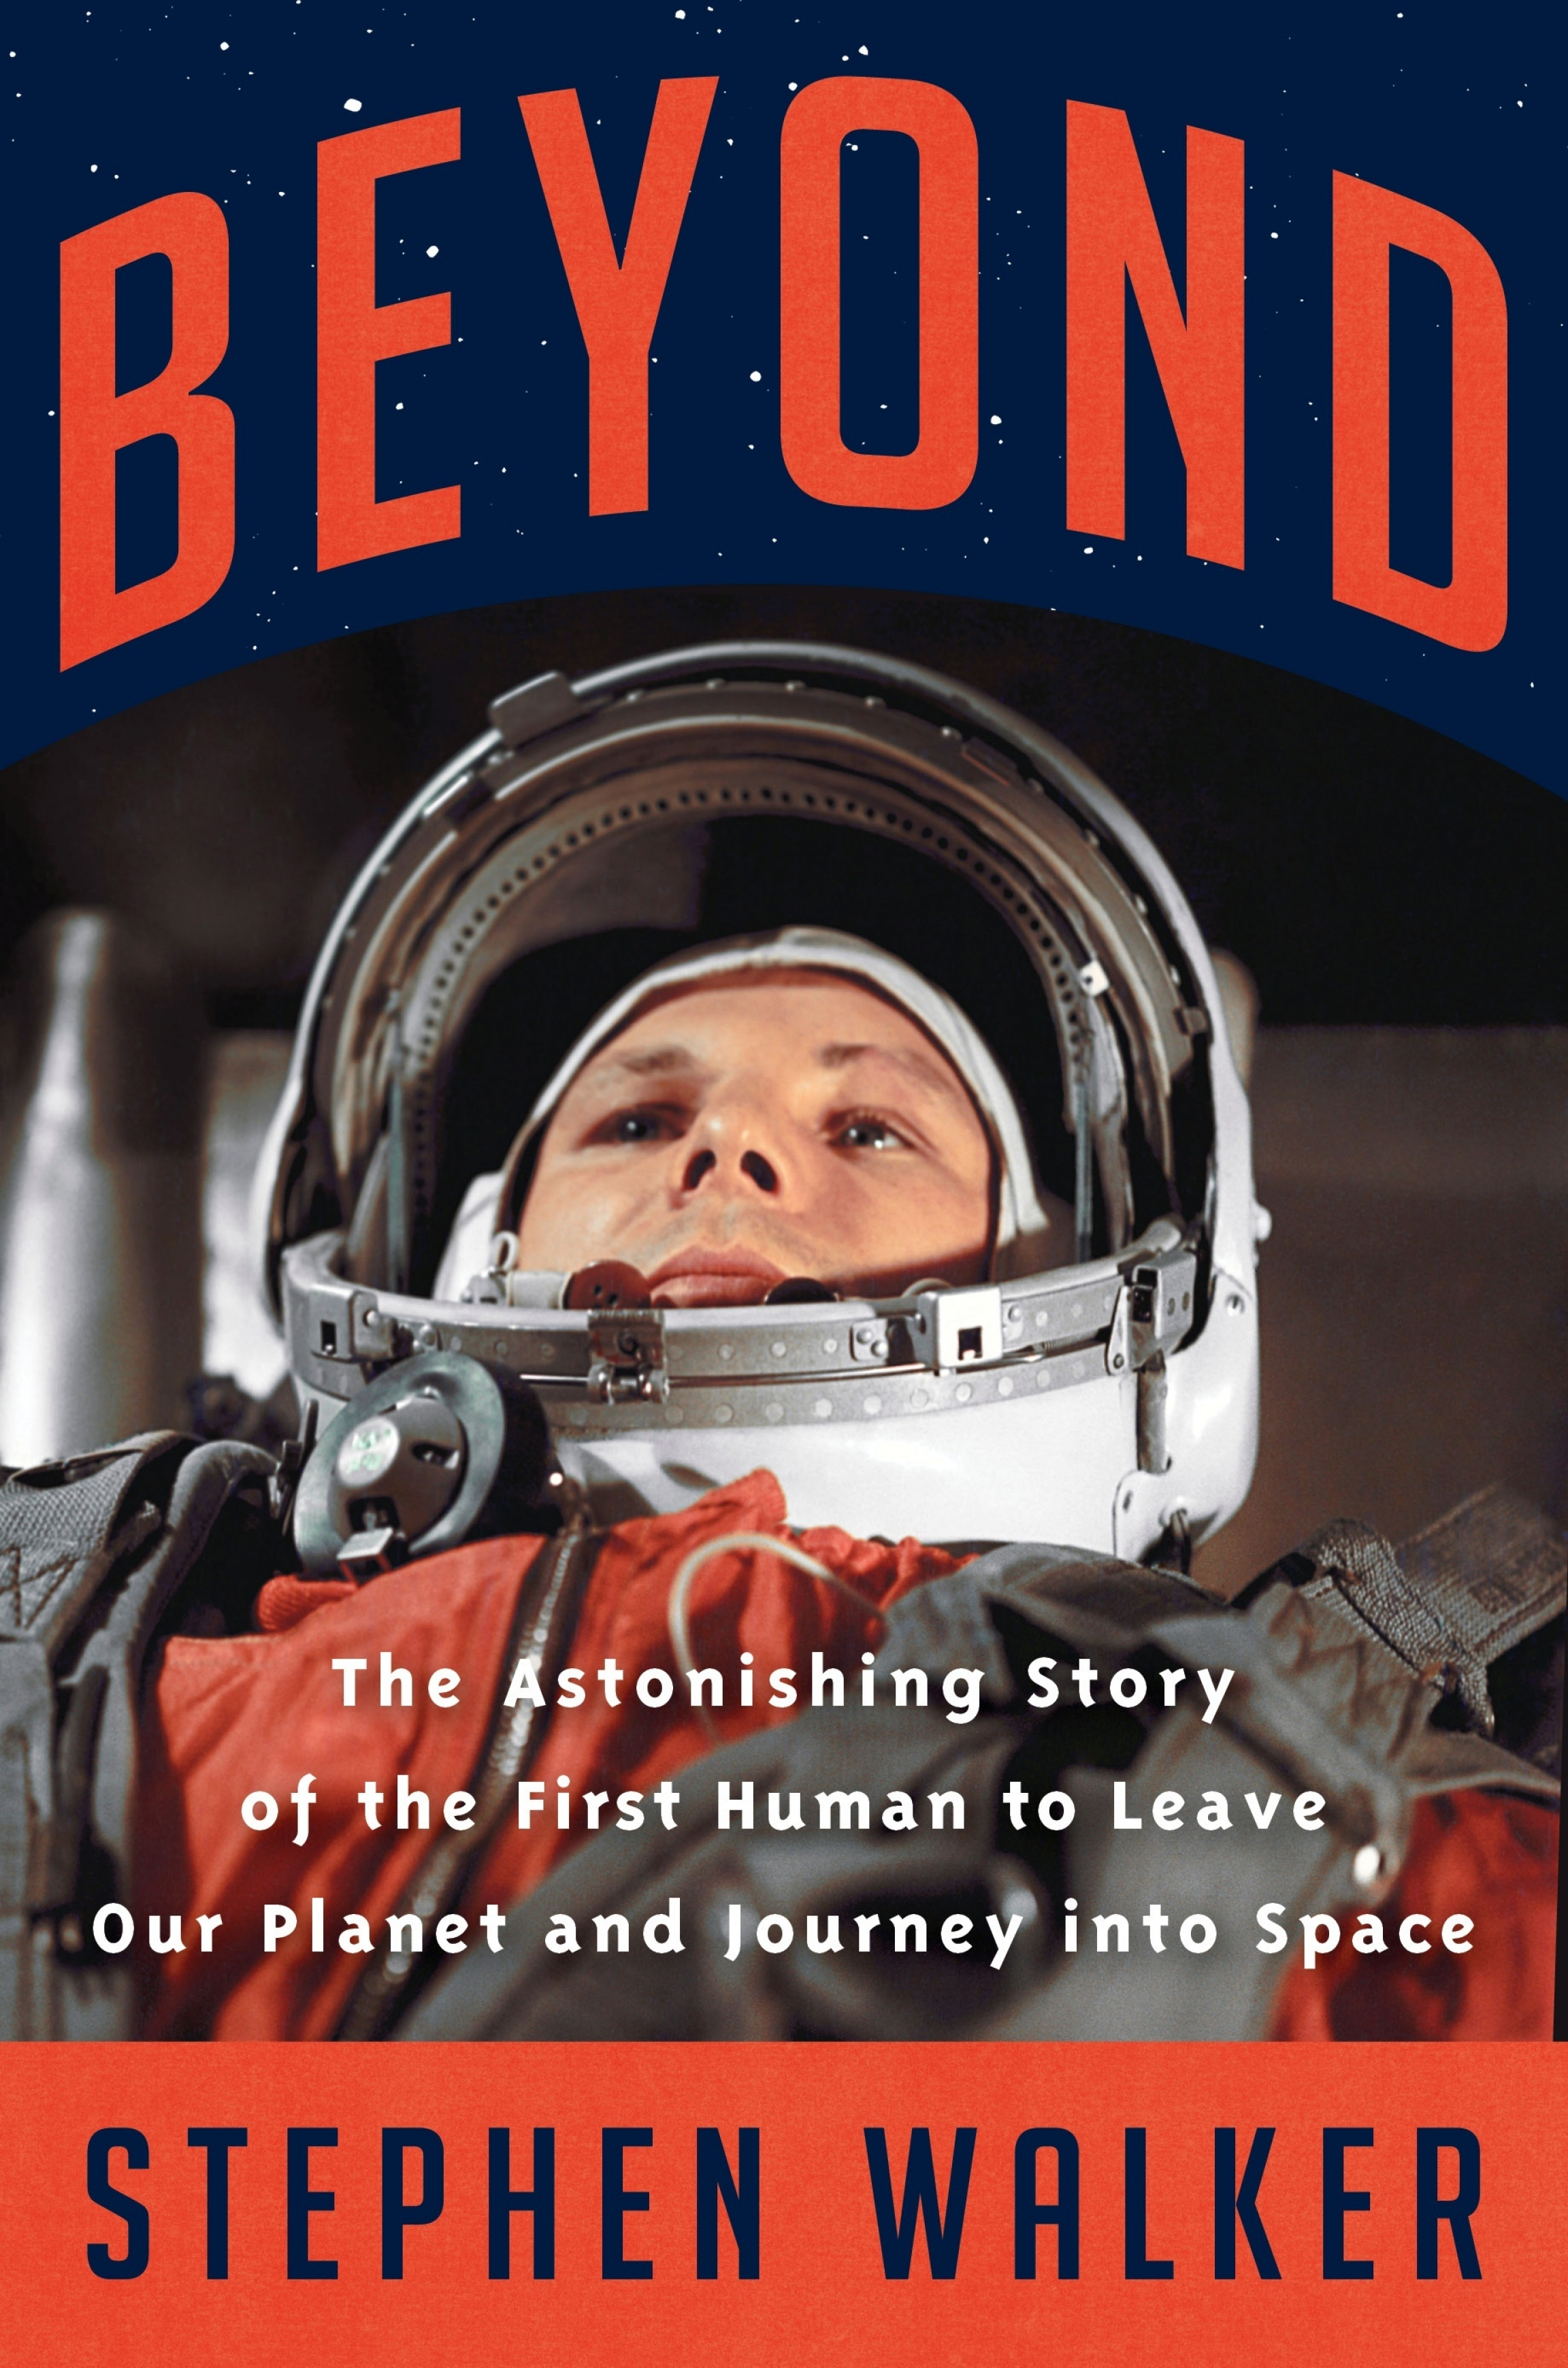 """Cover of Stephen Walker's book """"Beyond"""" with picture of cosmonaut Yuri Gagarin"""